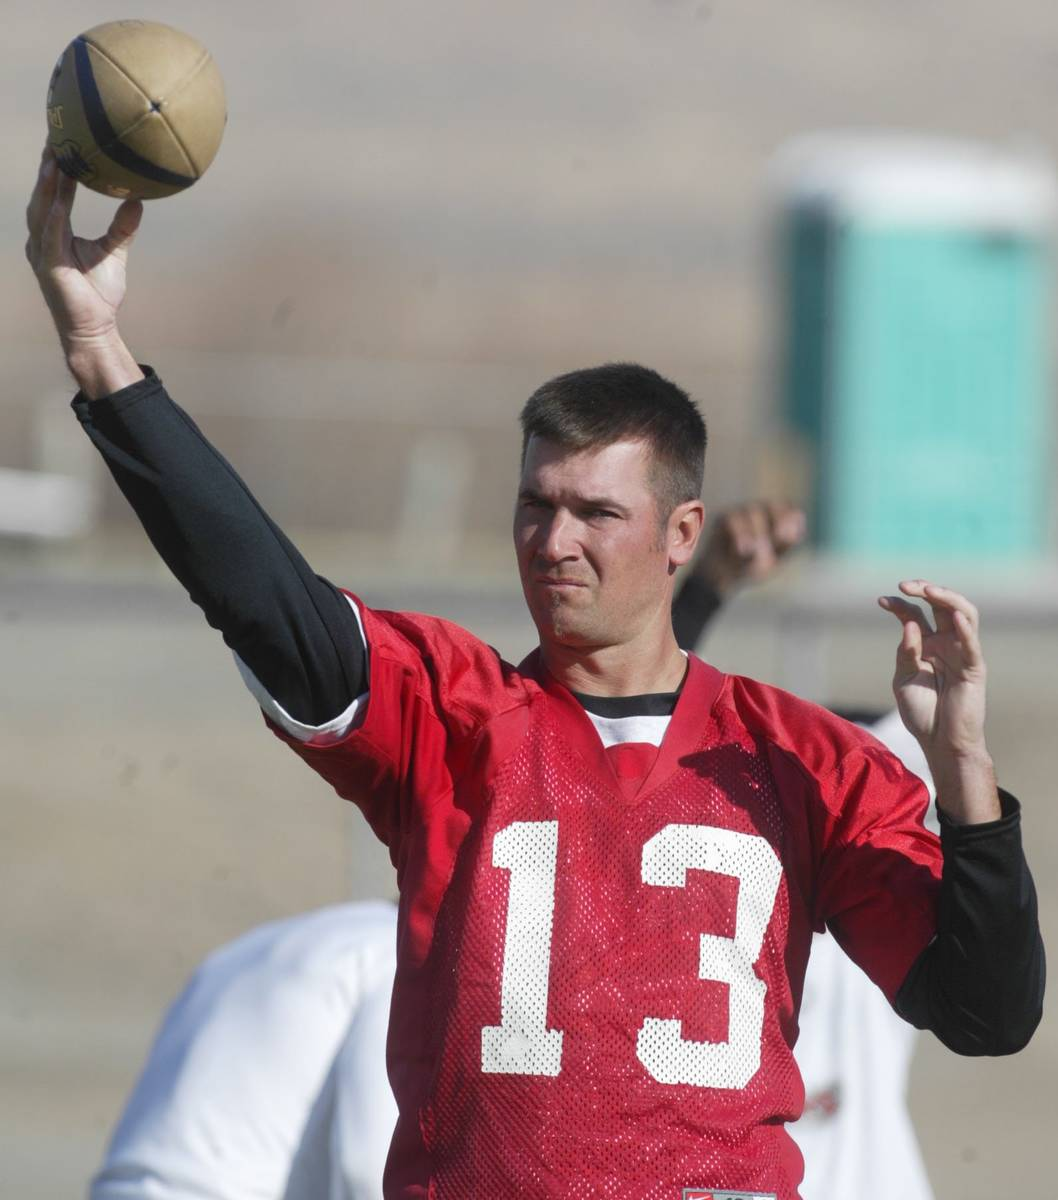 Sports; Football player, QB Clint Dolezel throws the football during the Gladiators morning pra ...